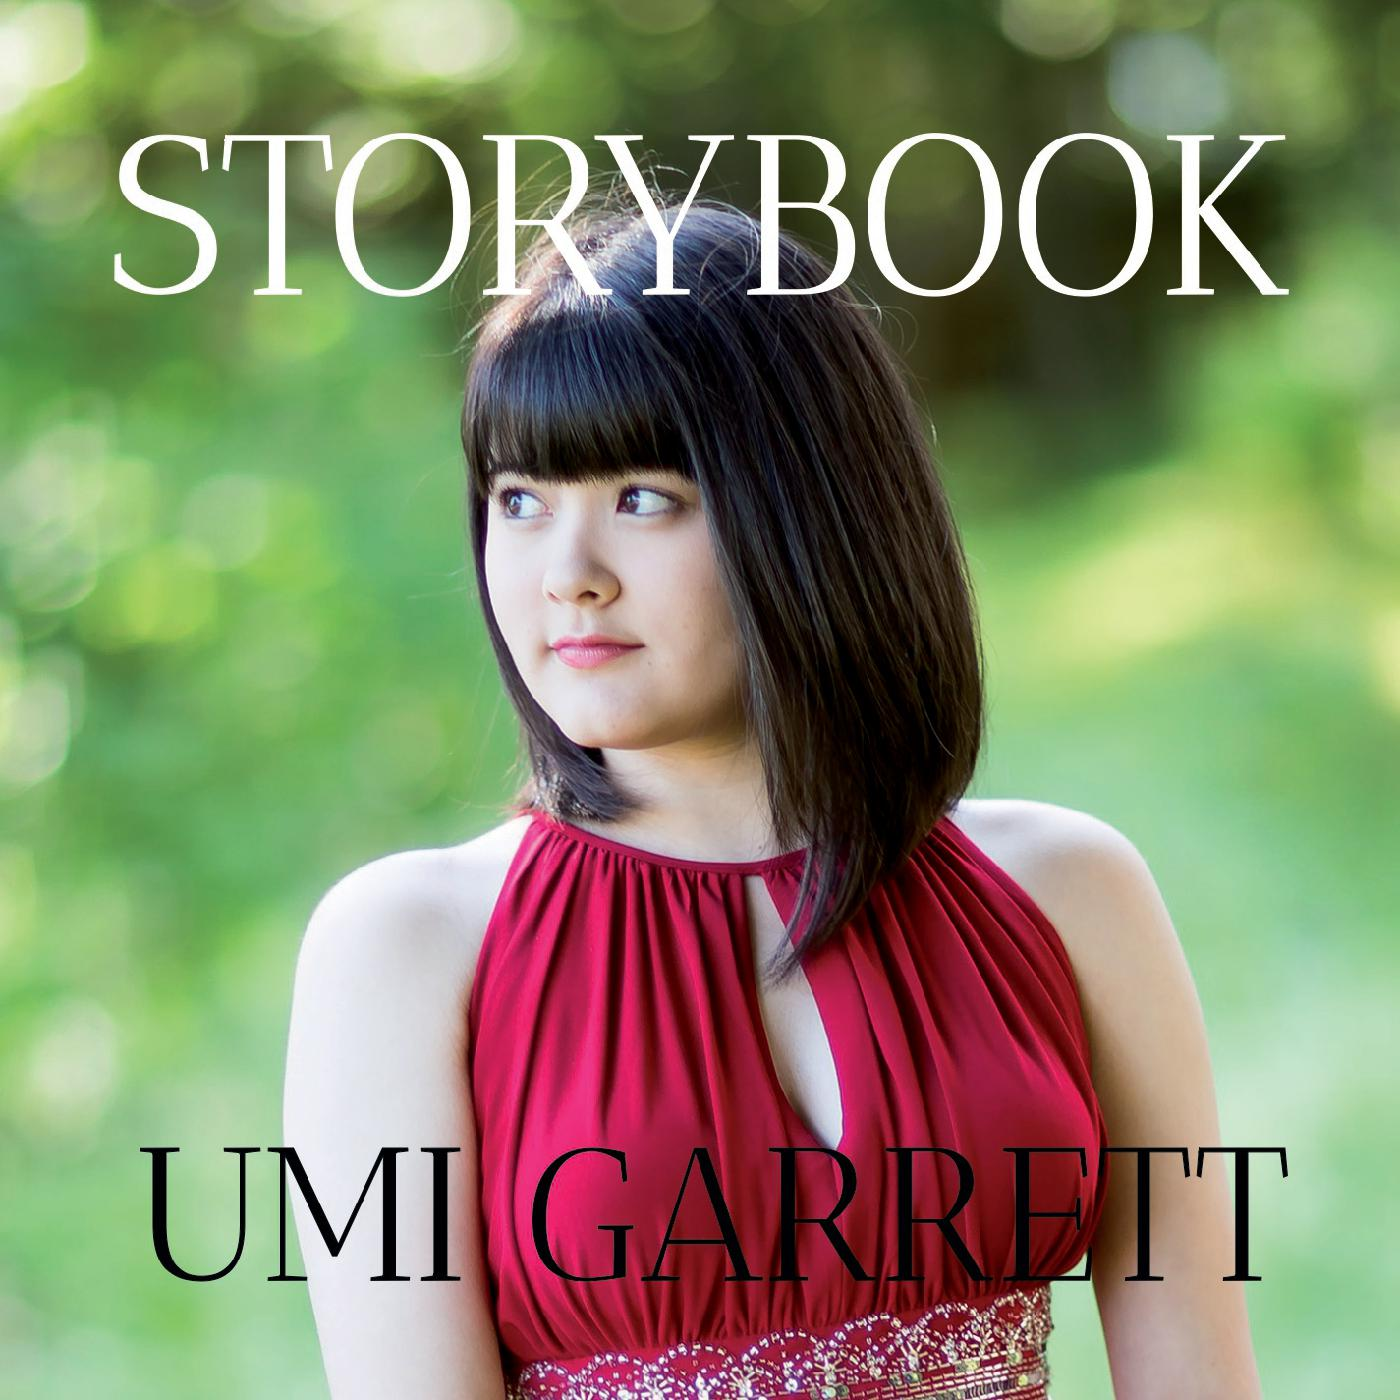 Storybook Cover Image.jpg